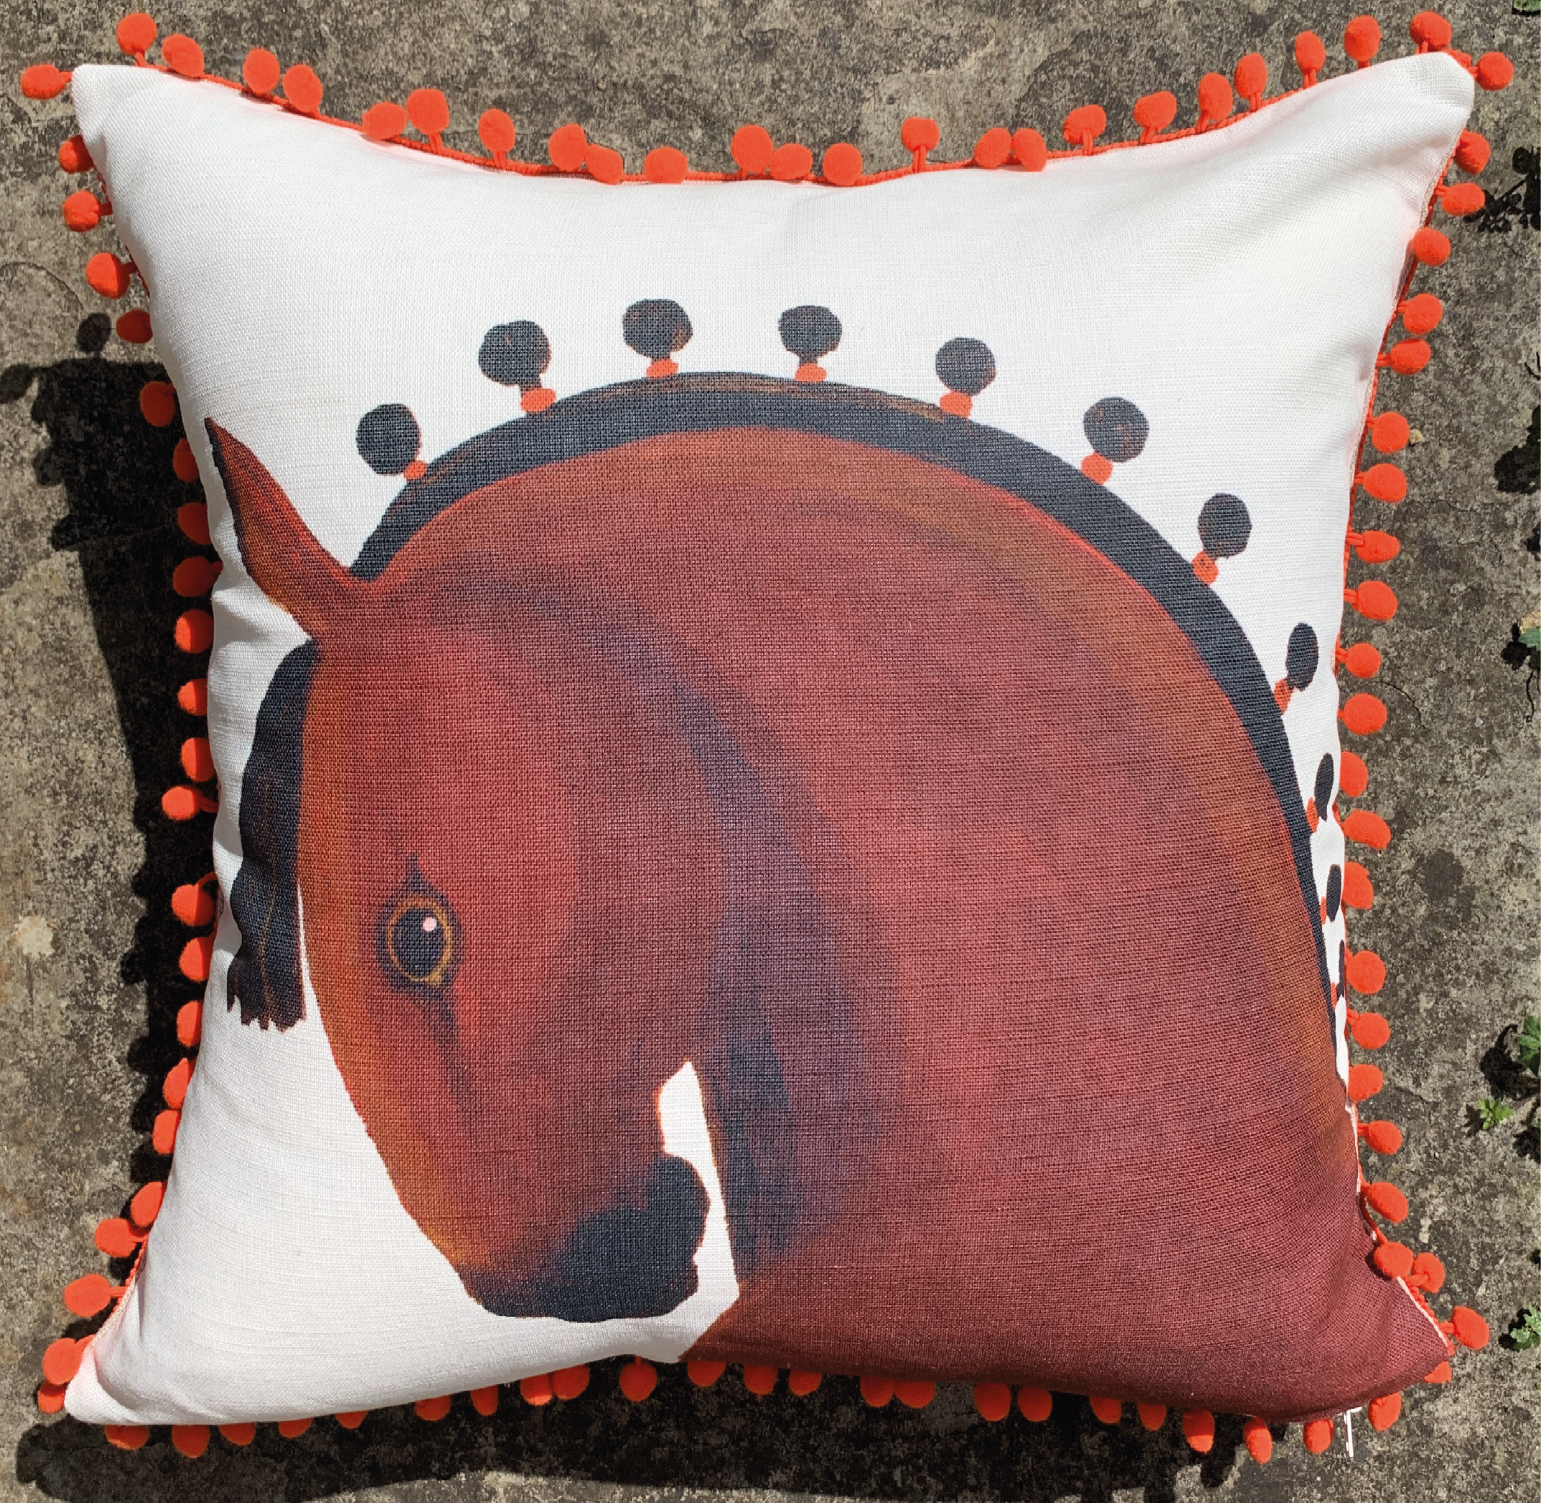 Limited Edition Pom Pom Handsome Horse Cushion